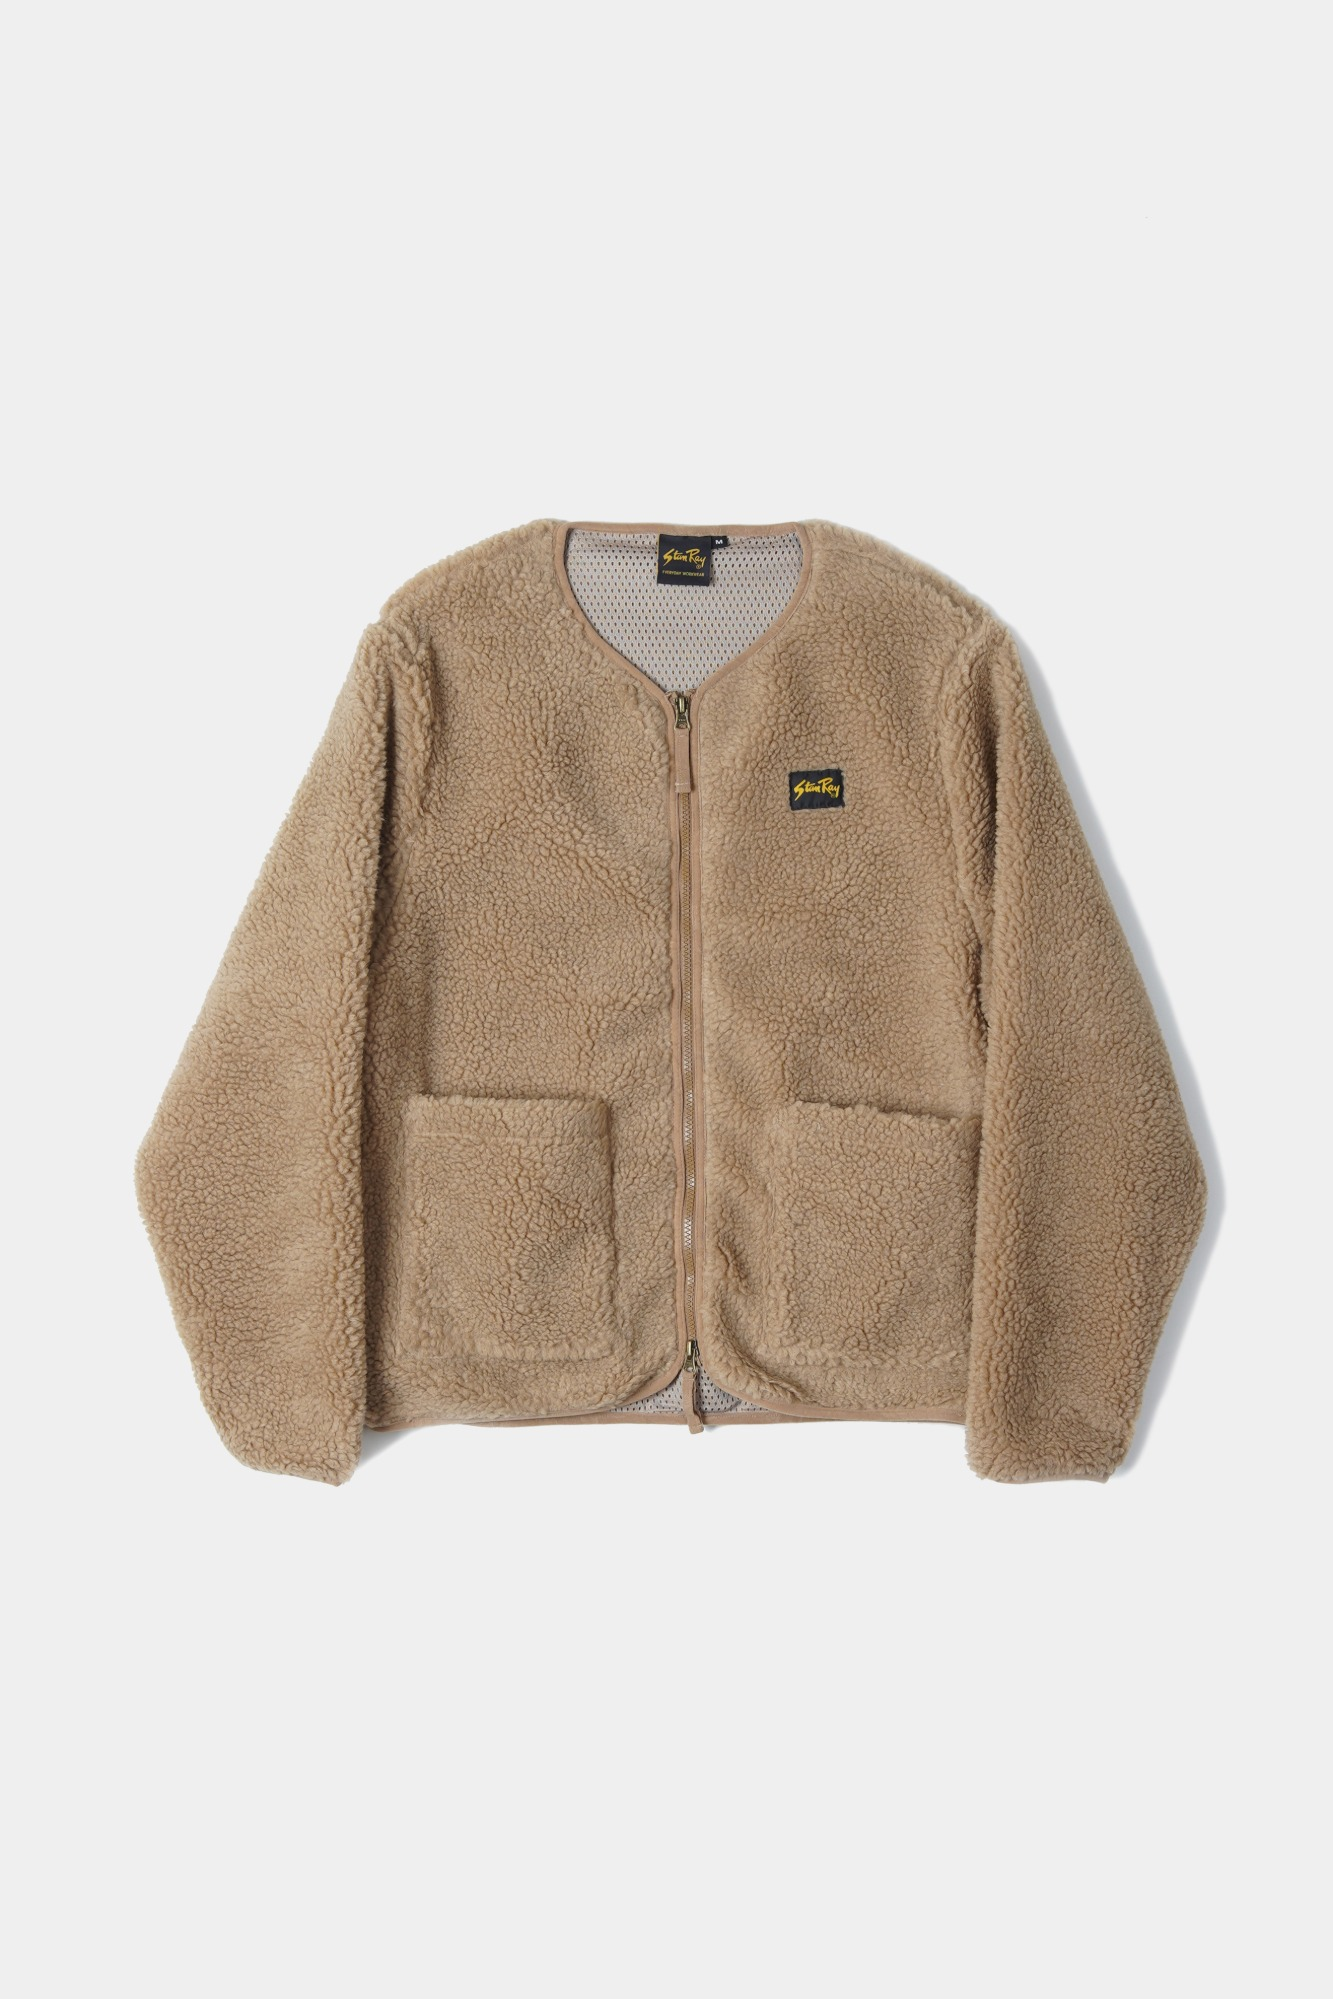 "STAN RAY Fleece Layer Cardigan ""Khaki Boa Fleece"""